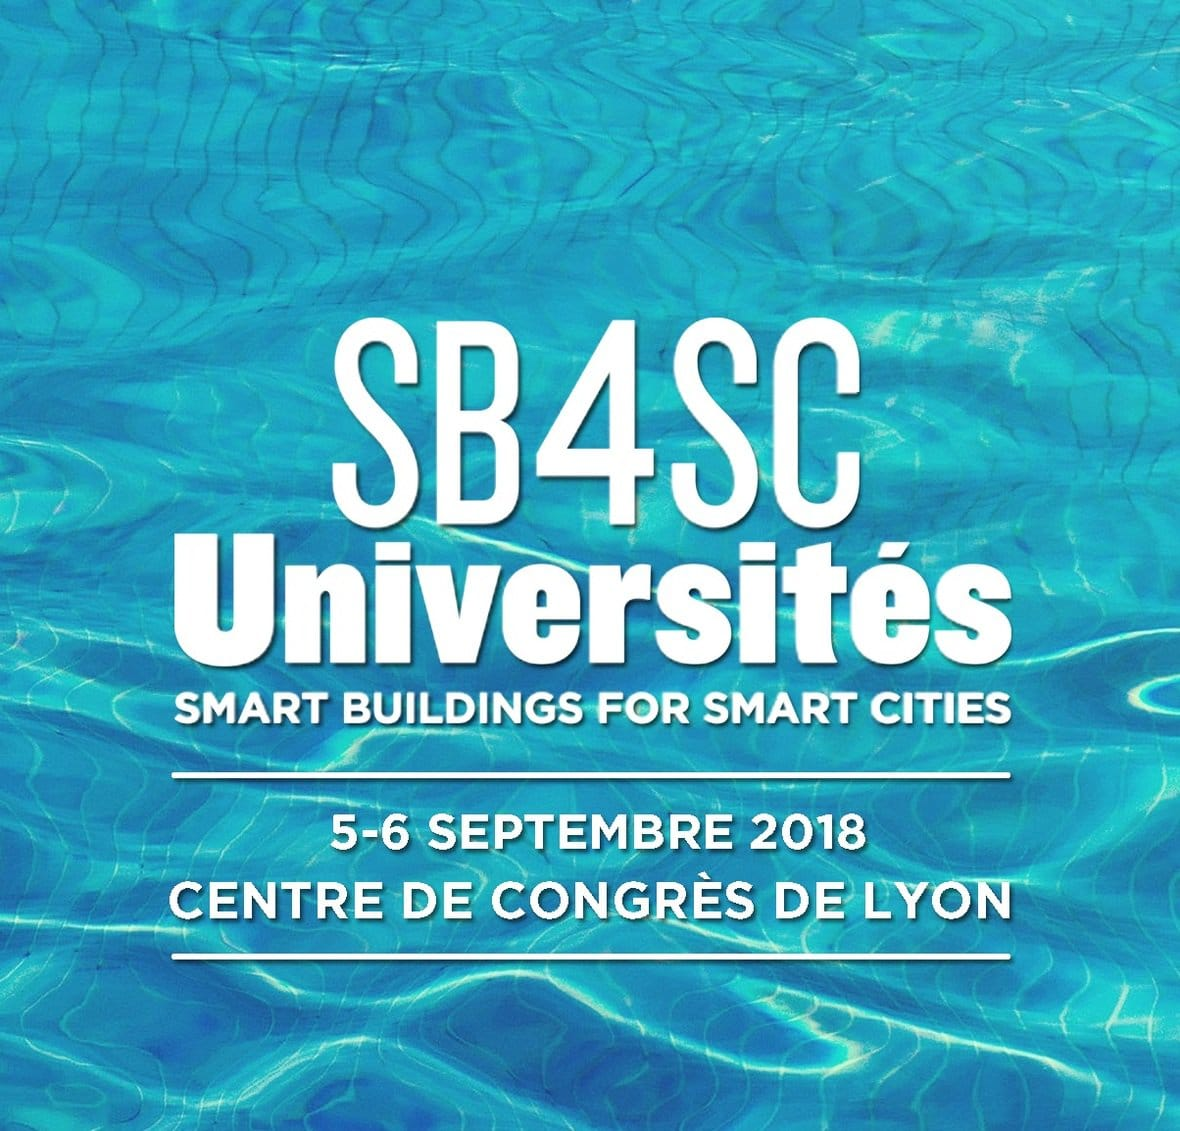 Université d'été Smart Buildings 4 Smart Cities